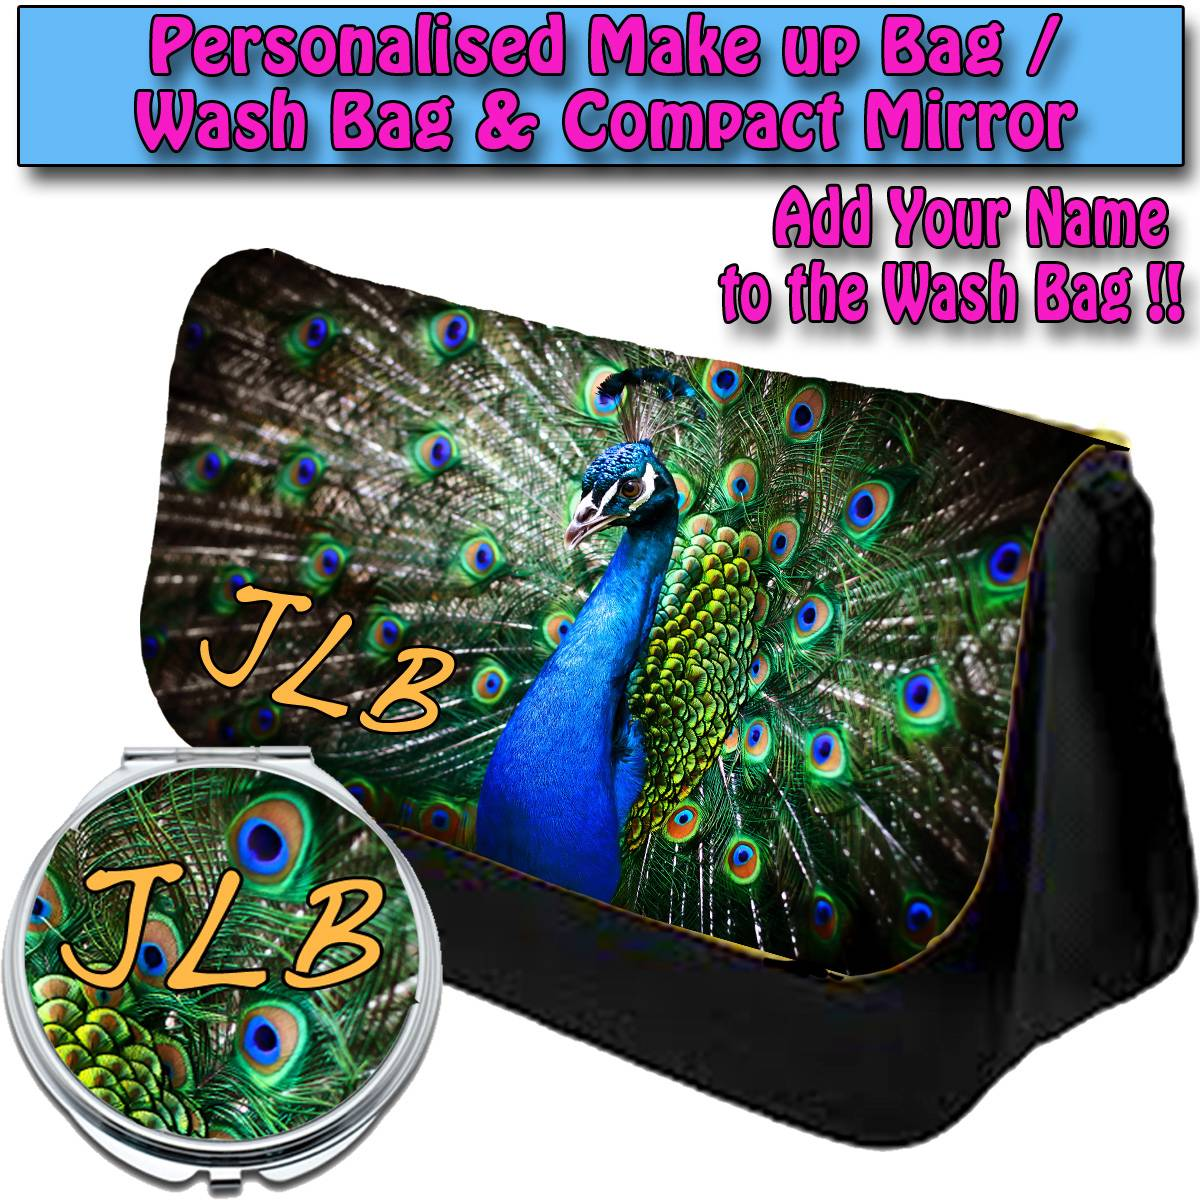 PERSONALISED-WOMENS-PEACOCK-BIRD-MAKE-UP-BAG-COMPACT-MIRROR-LADIES-GIFT031